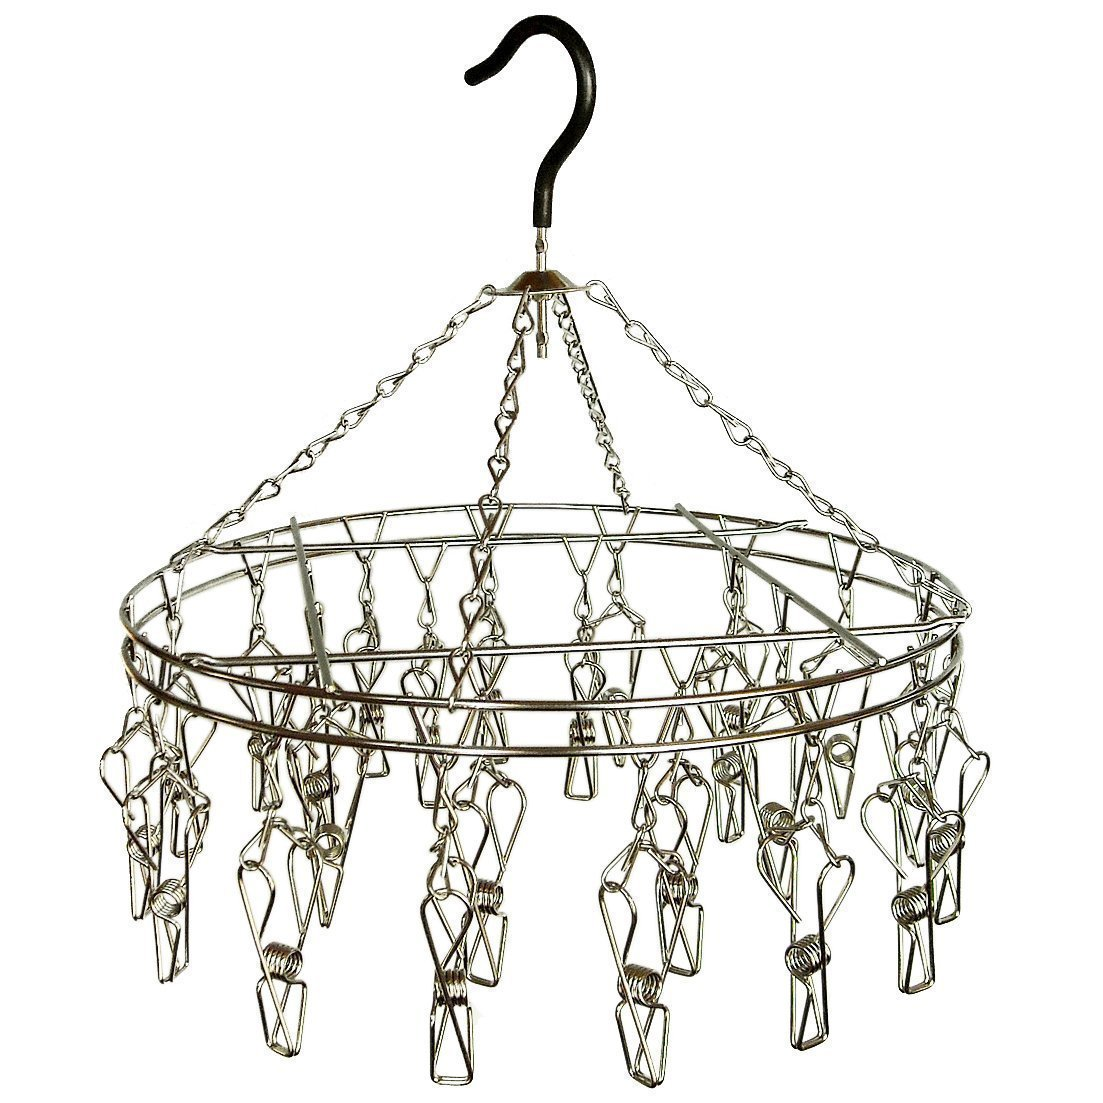 Sky Fish Sock Dryer Clothes Hanger Drying Rack Round Hanger Stainless Steel Hanger Applicable to clip socks towel underwear and scarves 20 clips